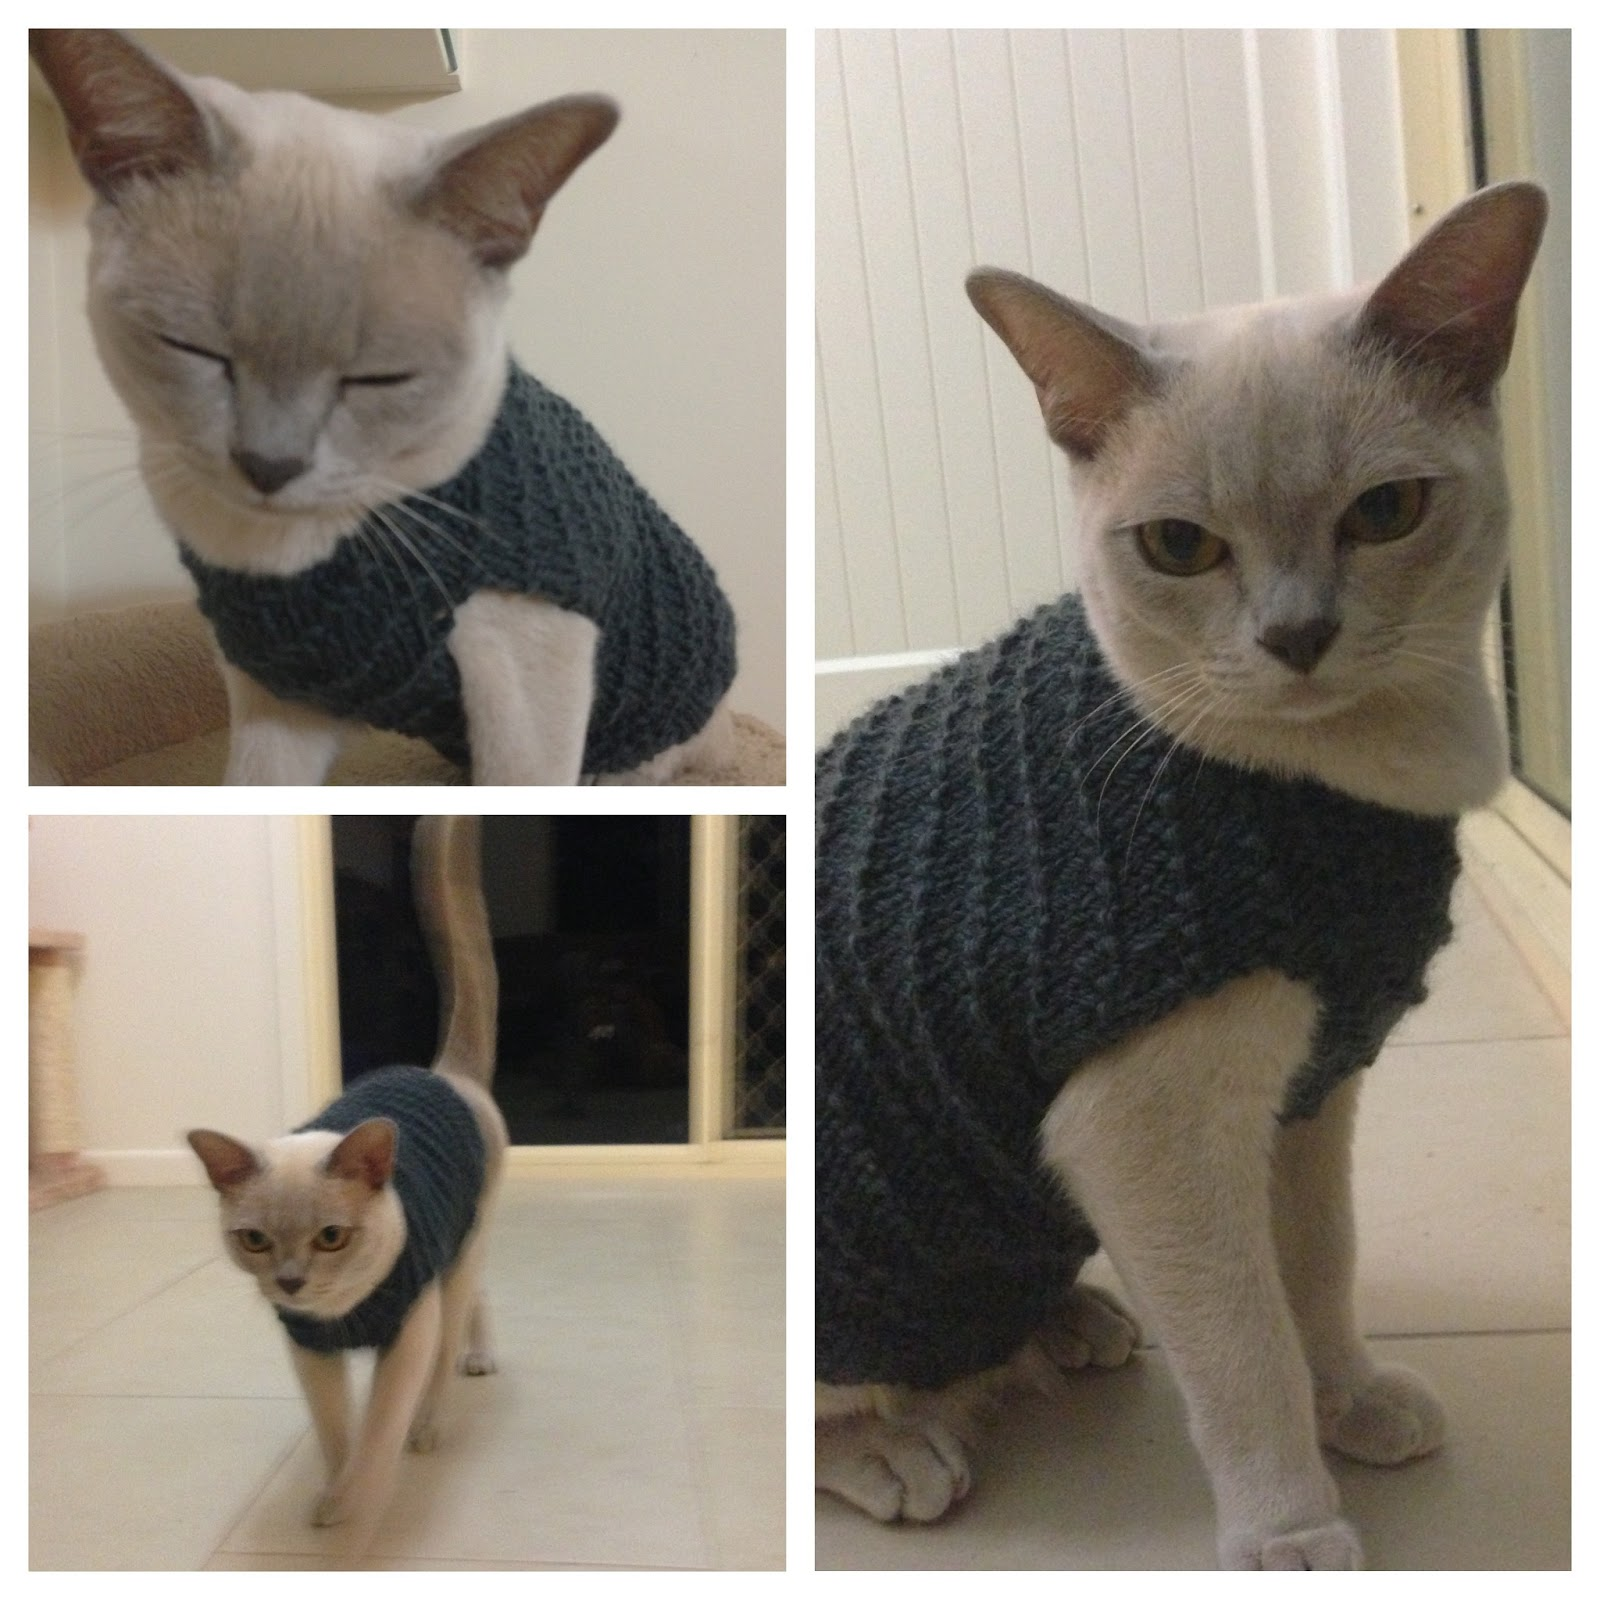 Knitting Pattern Cat Jumper : A Flood of Stitches: Crazy knitting projects - The cat jumper